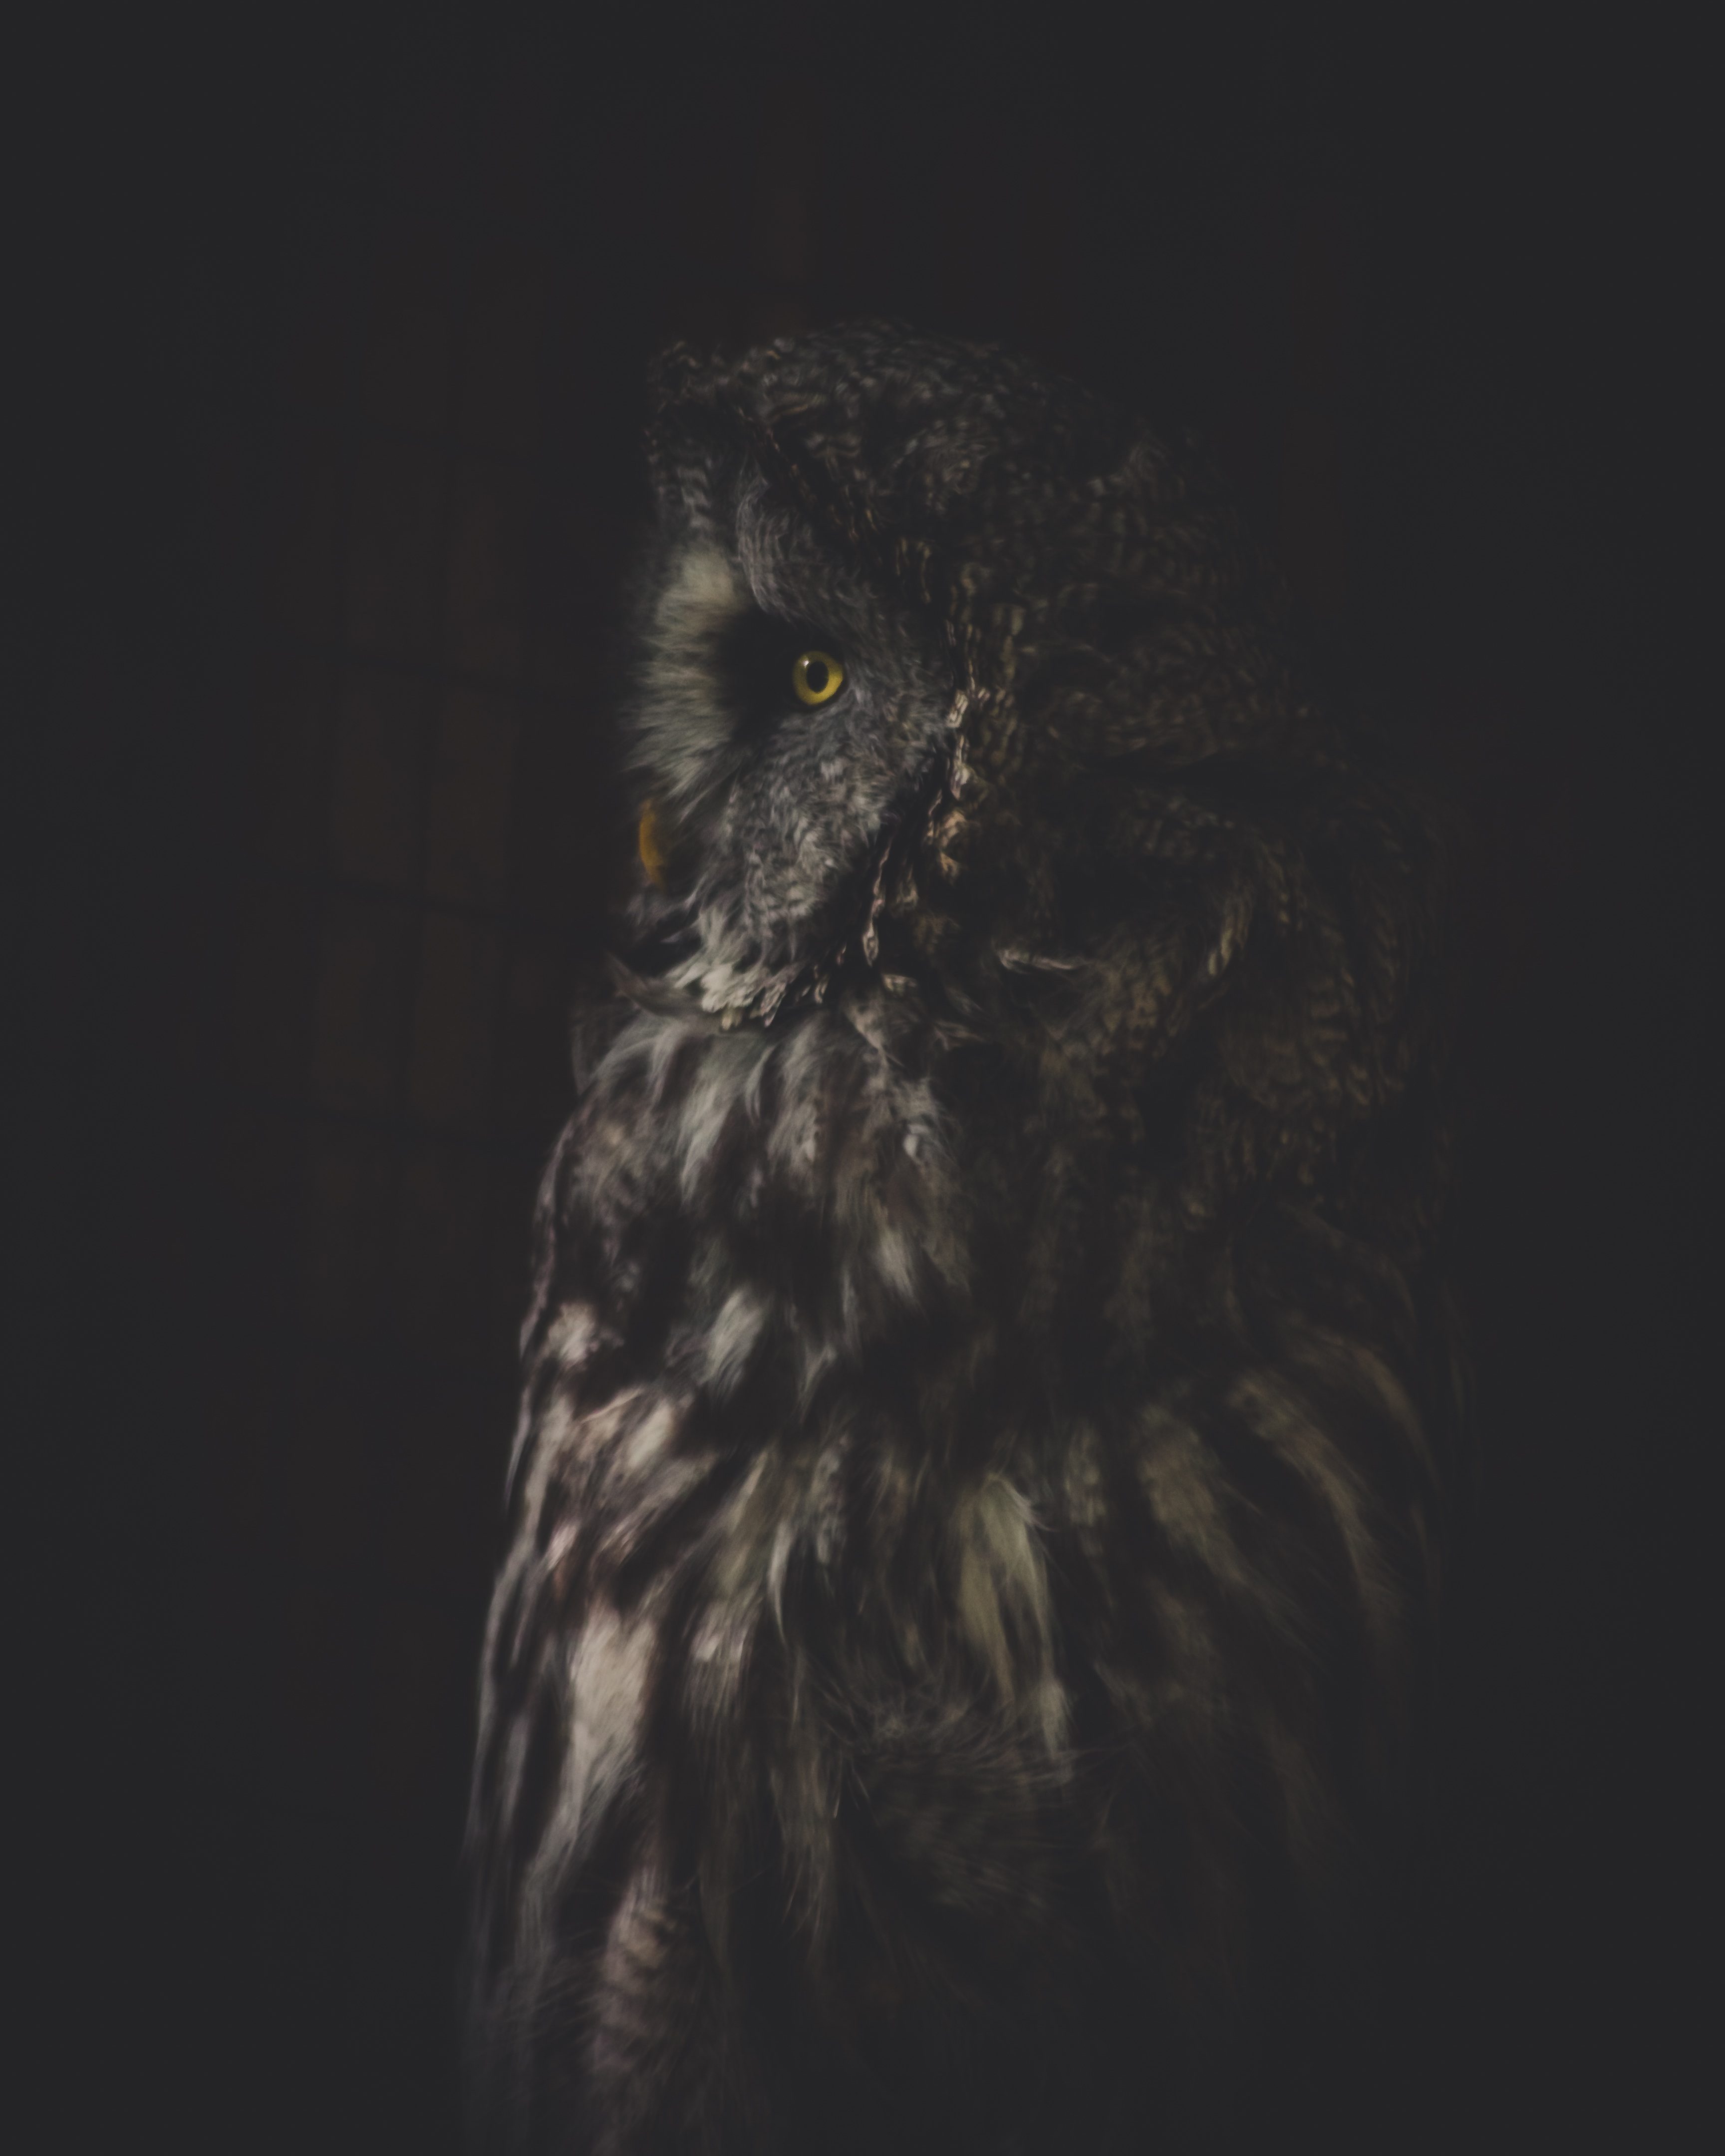 58493 download wallpaper Animals, Owl, Bird, Dark, Predator, Looks, Turned, Rotated screensavers and pictures for free